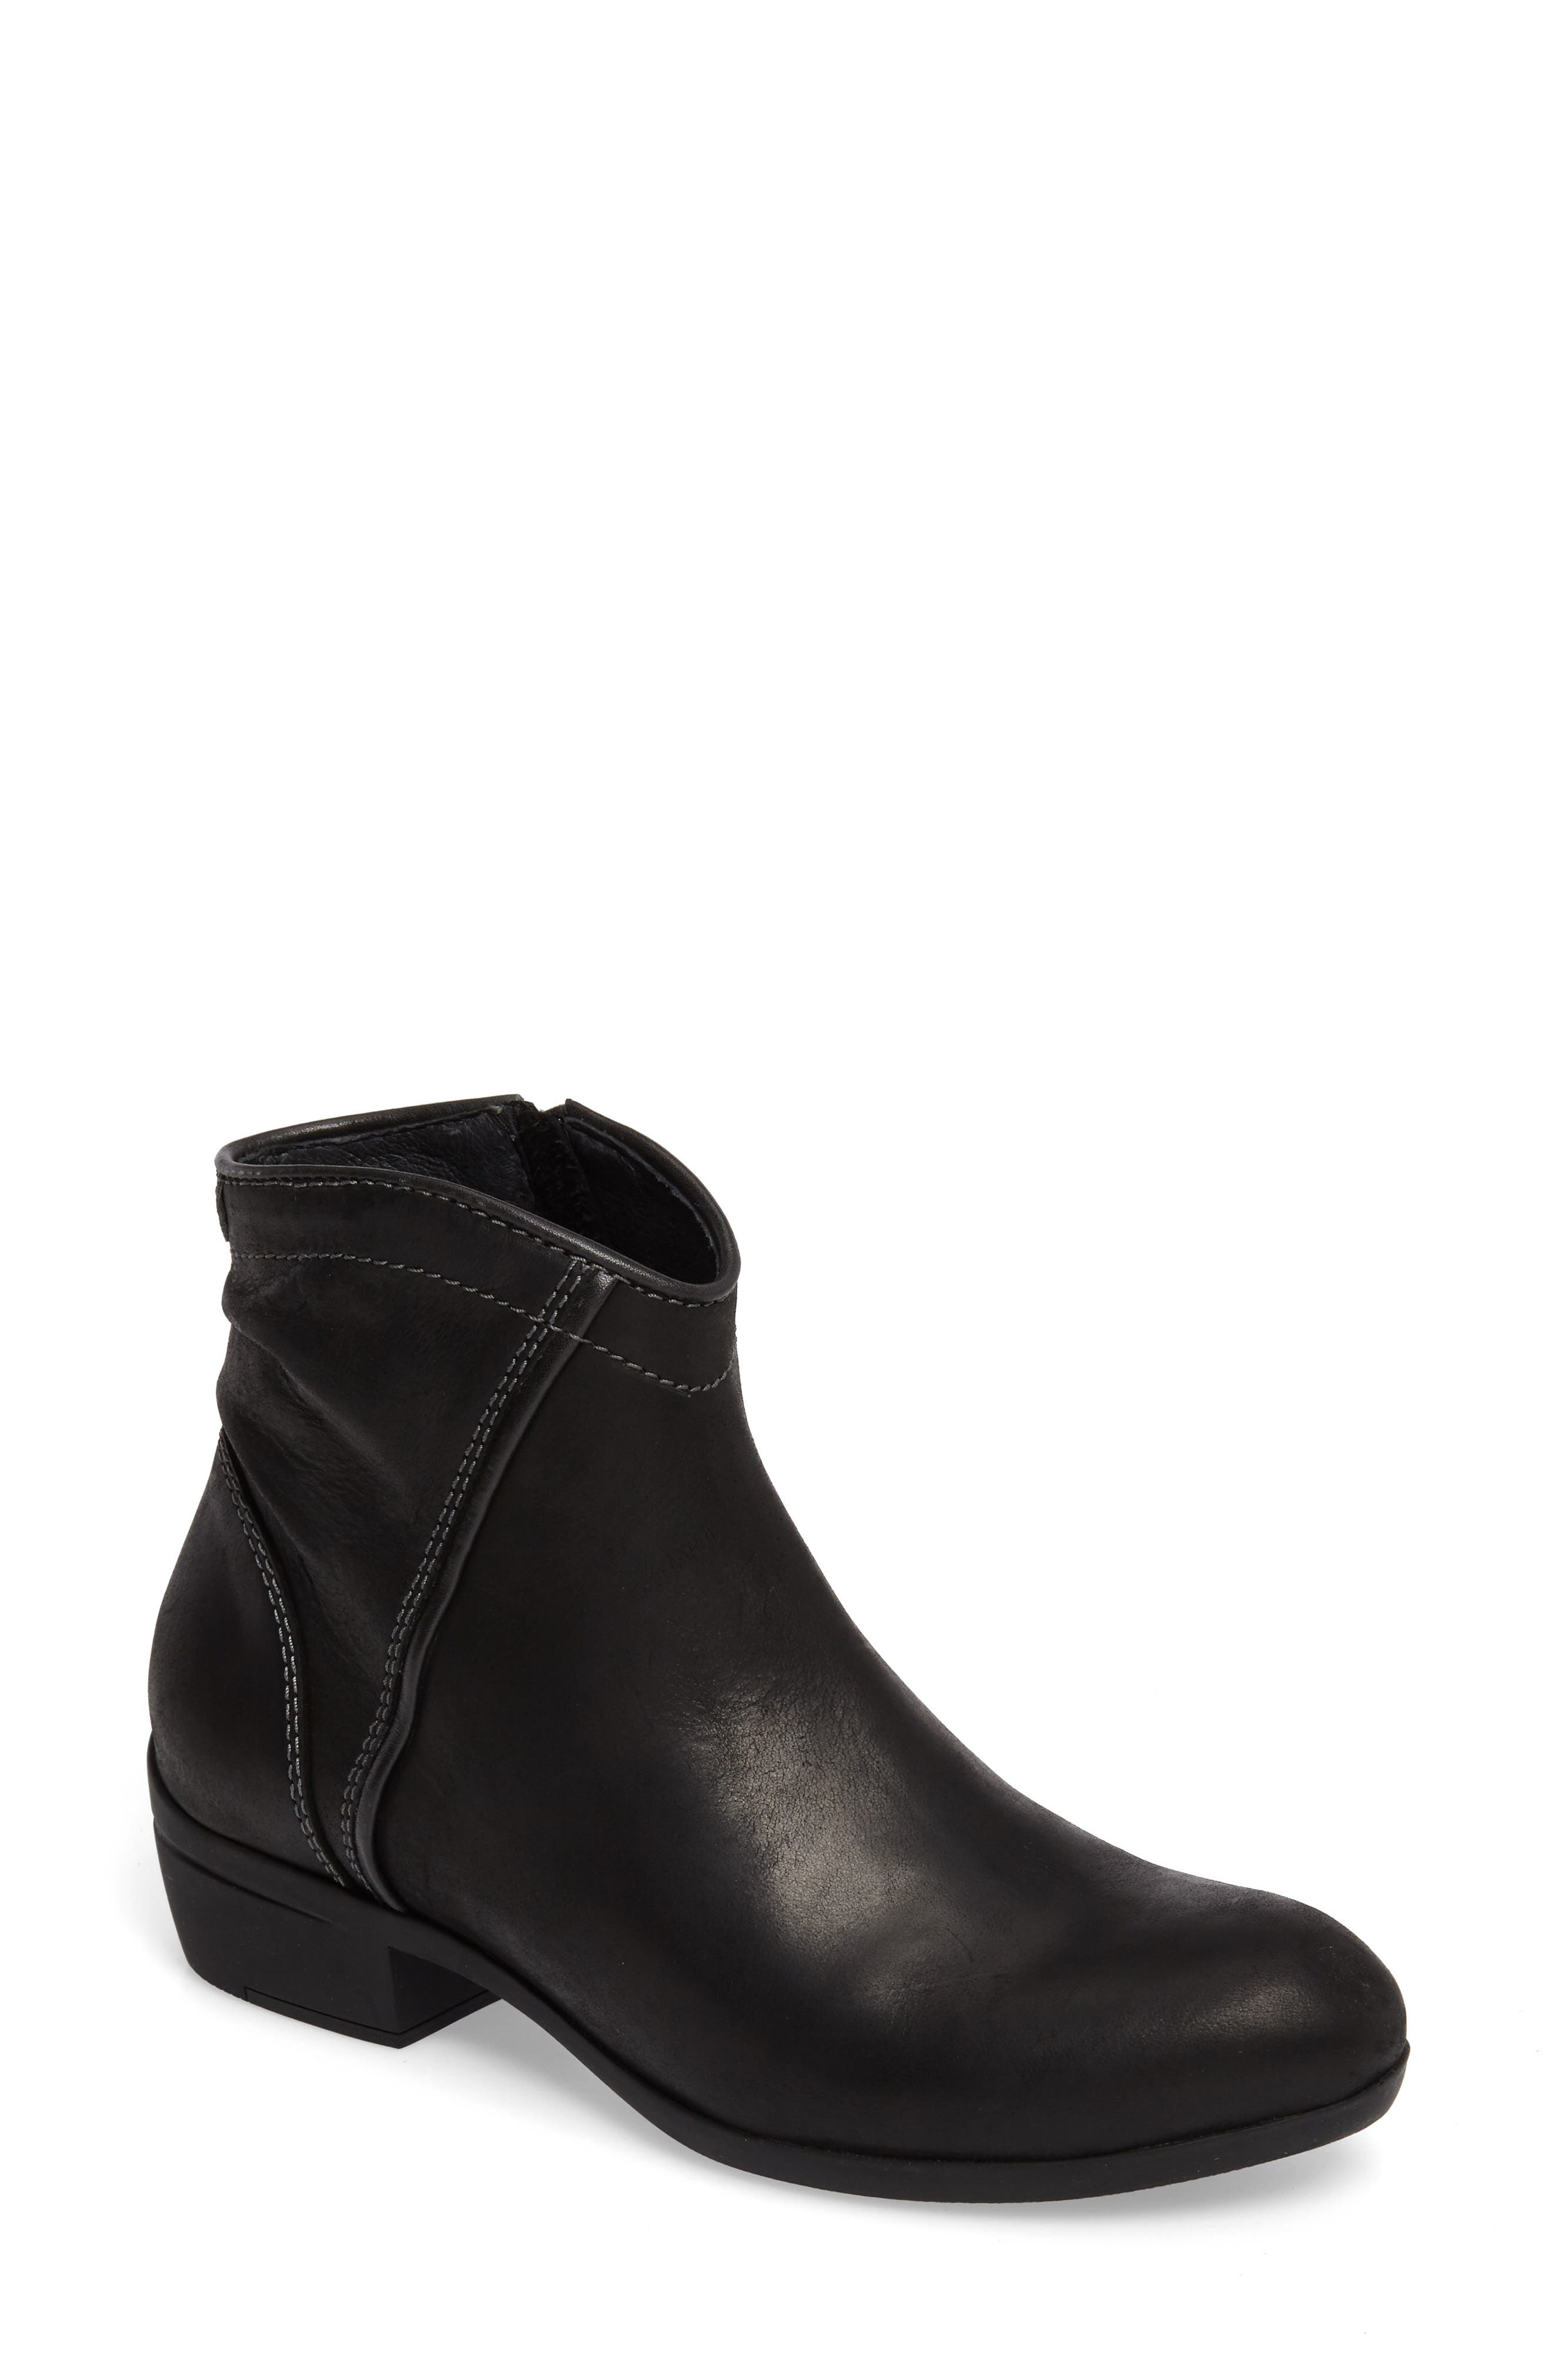 Winchester Bootie,                             Main thumbnail 1, color,                             001